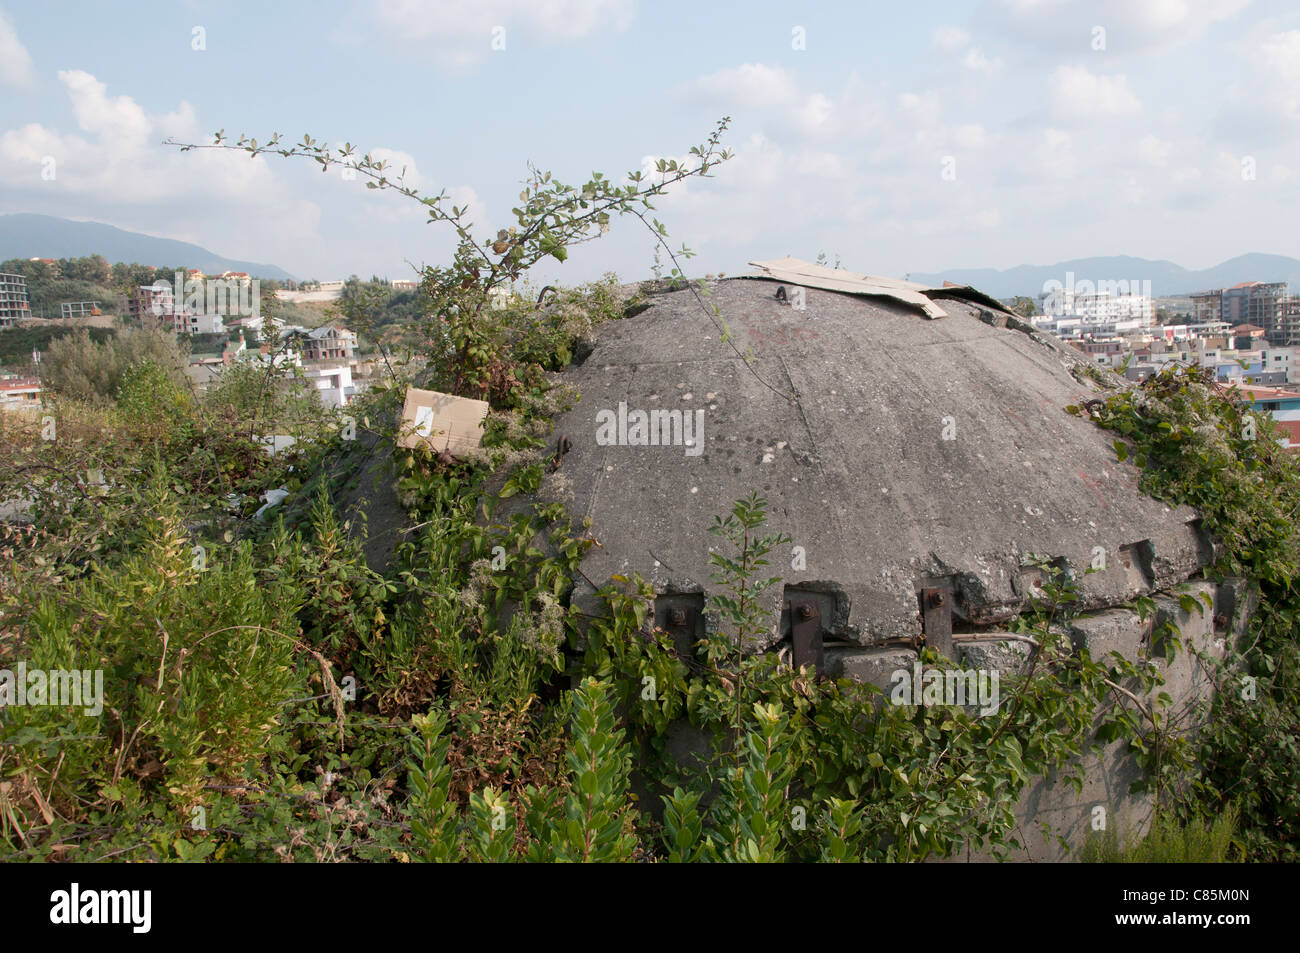 One of the cement bomb shelters left over from Enver Hoxha's defense plan - Stock Image